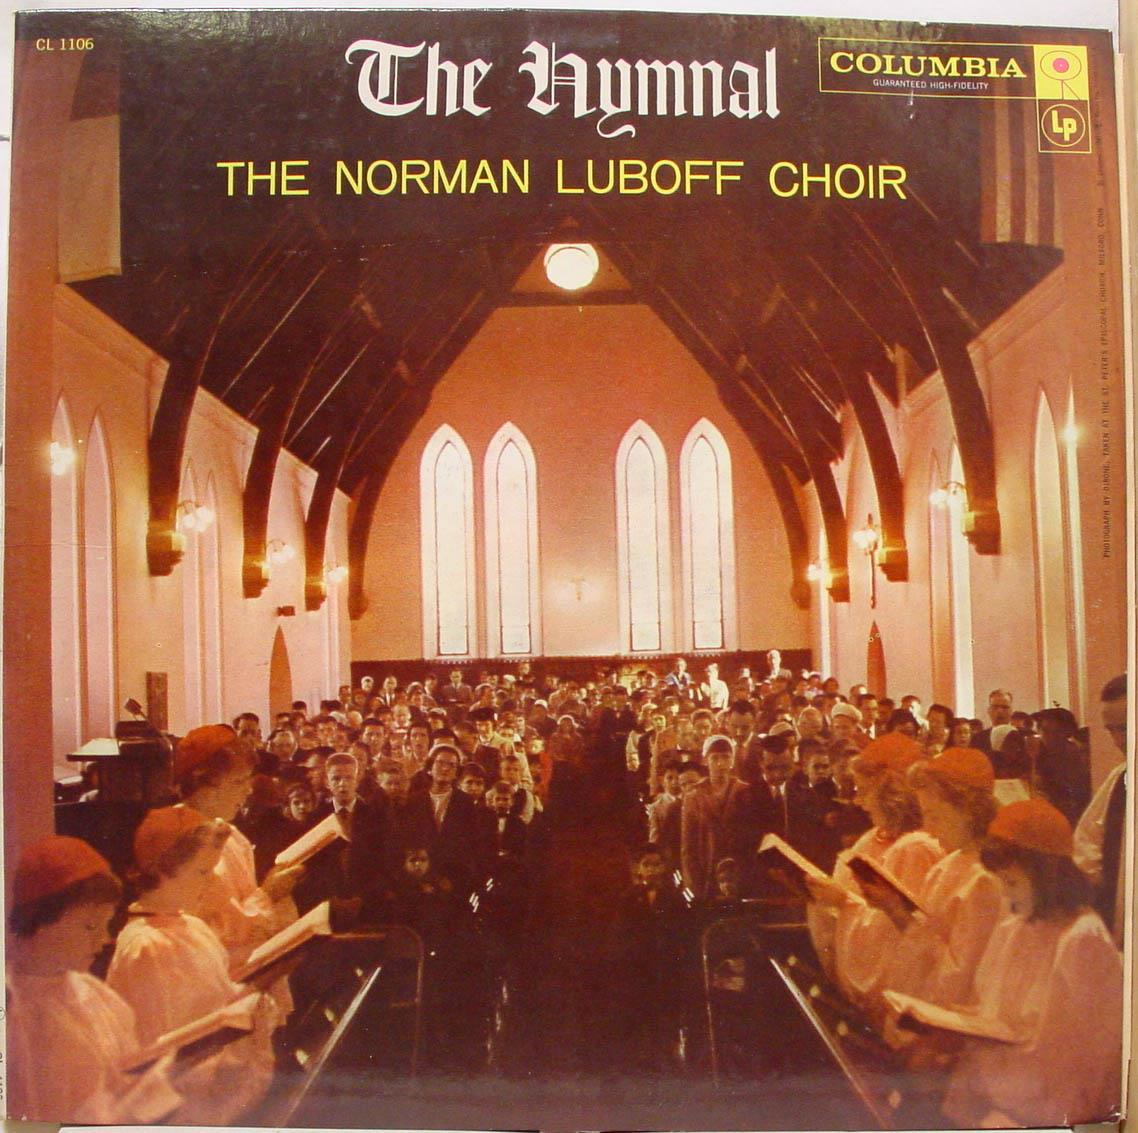 The Norman Luboff Choir